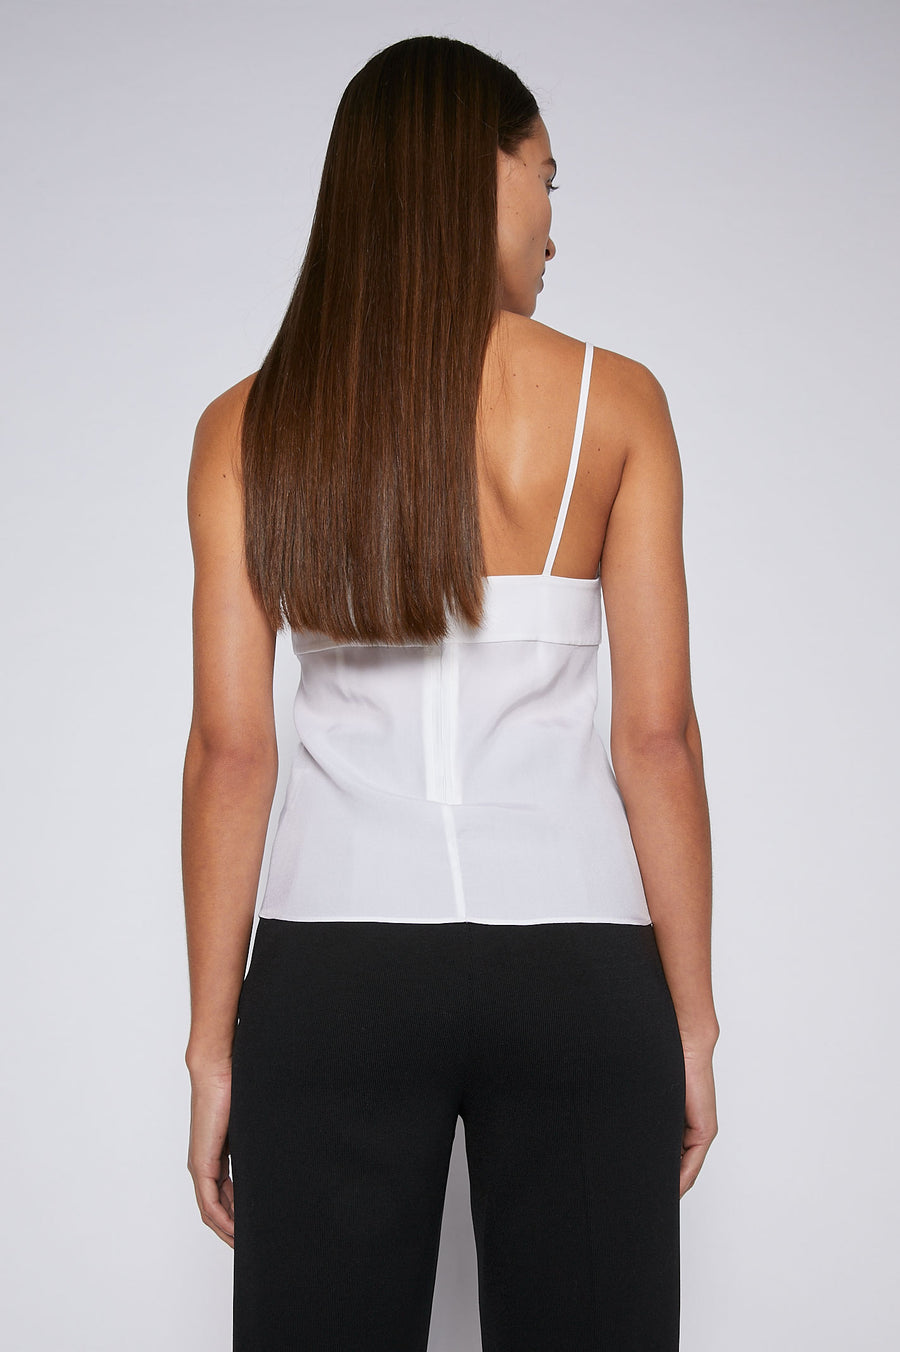 Invest in elegant basics with the Silk Camisole. Cut from lustrous silk to a relaxed silhouette